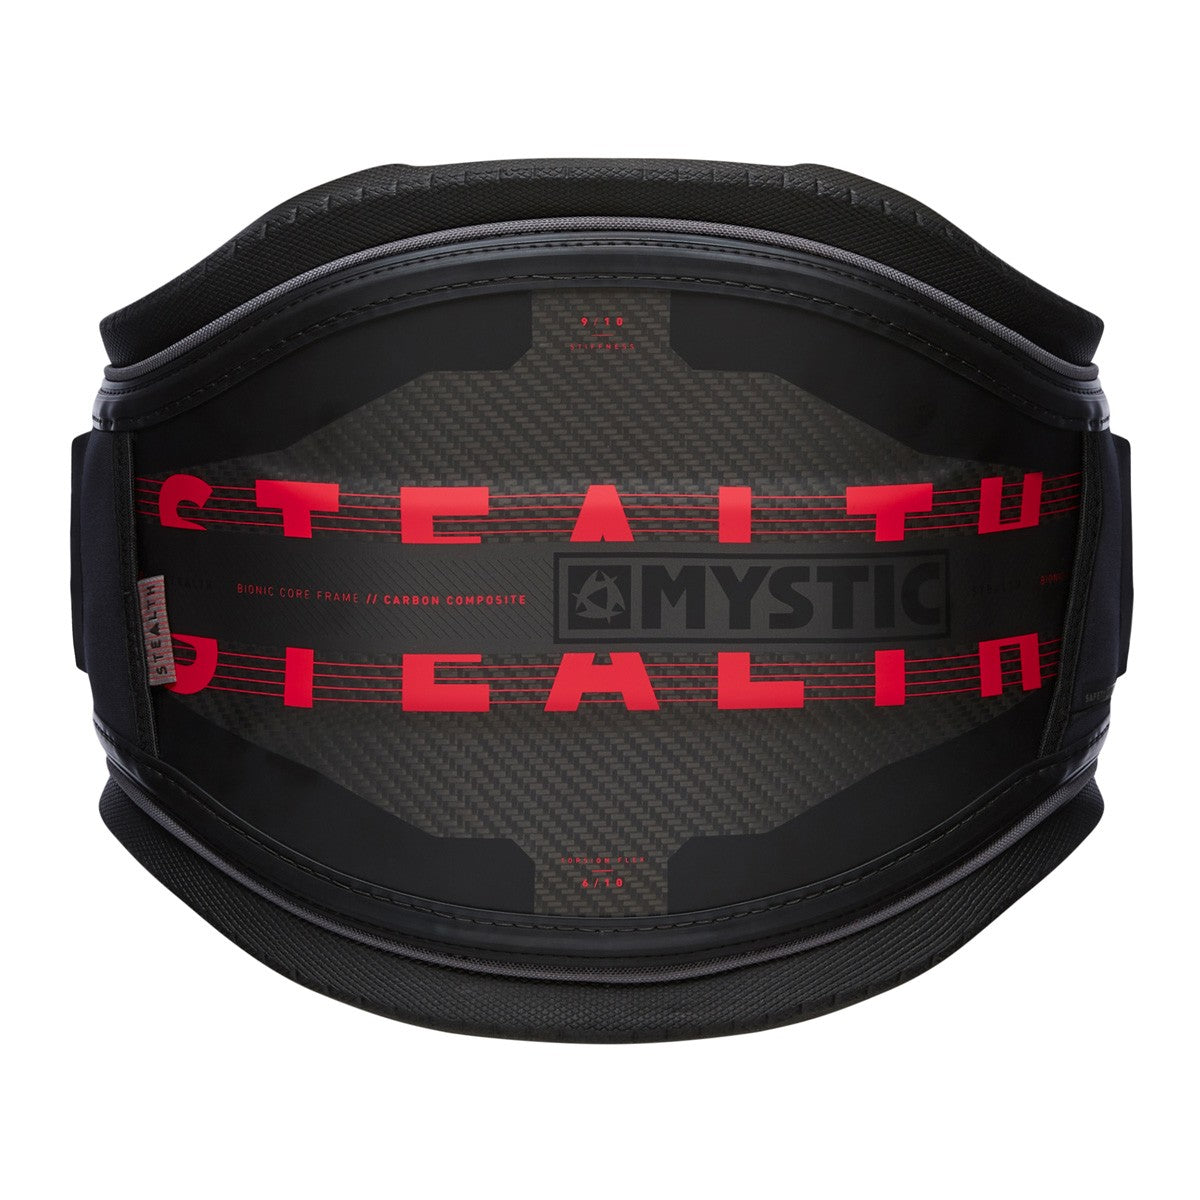 Mystic Stealth Waist Harness - Black/Red 2021